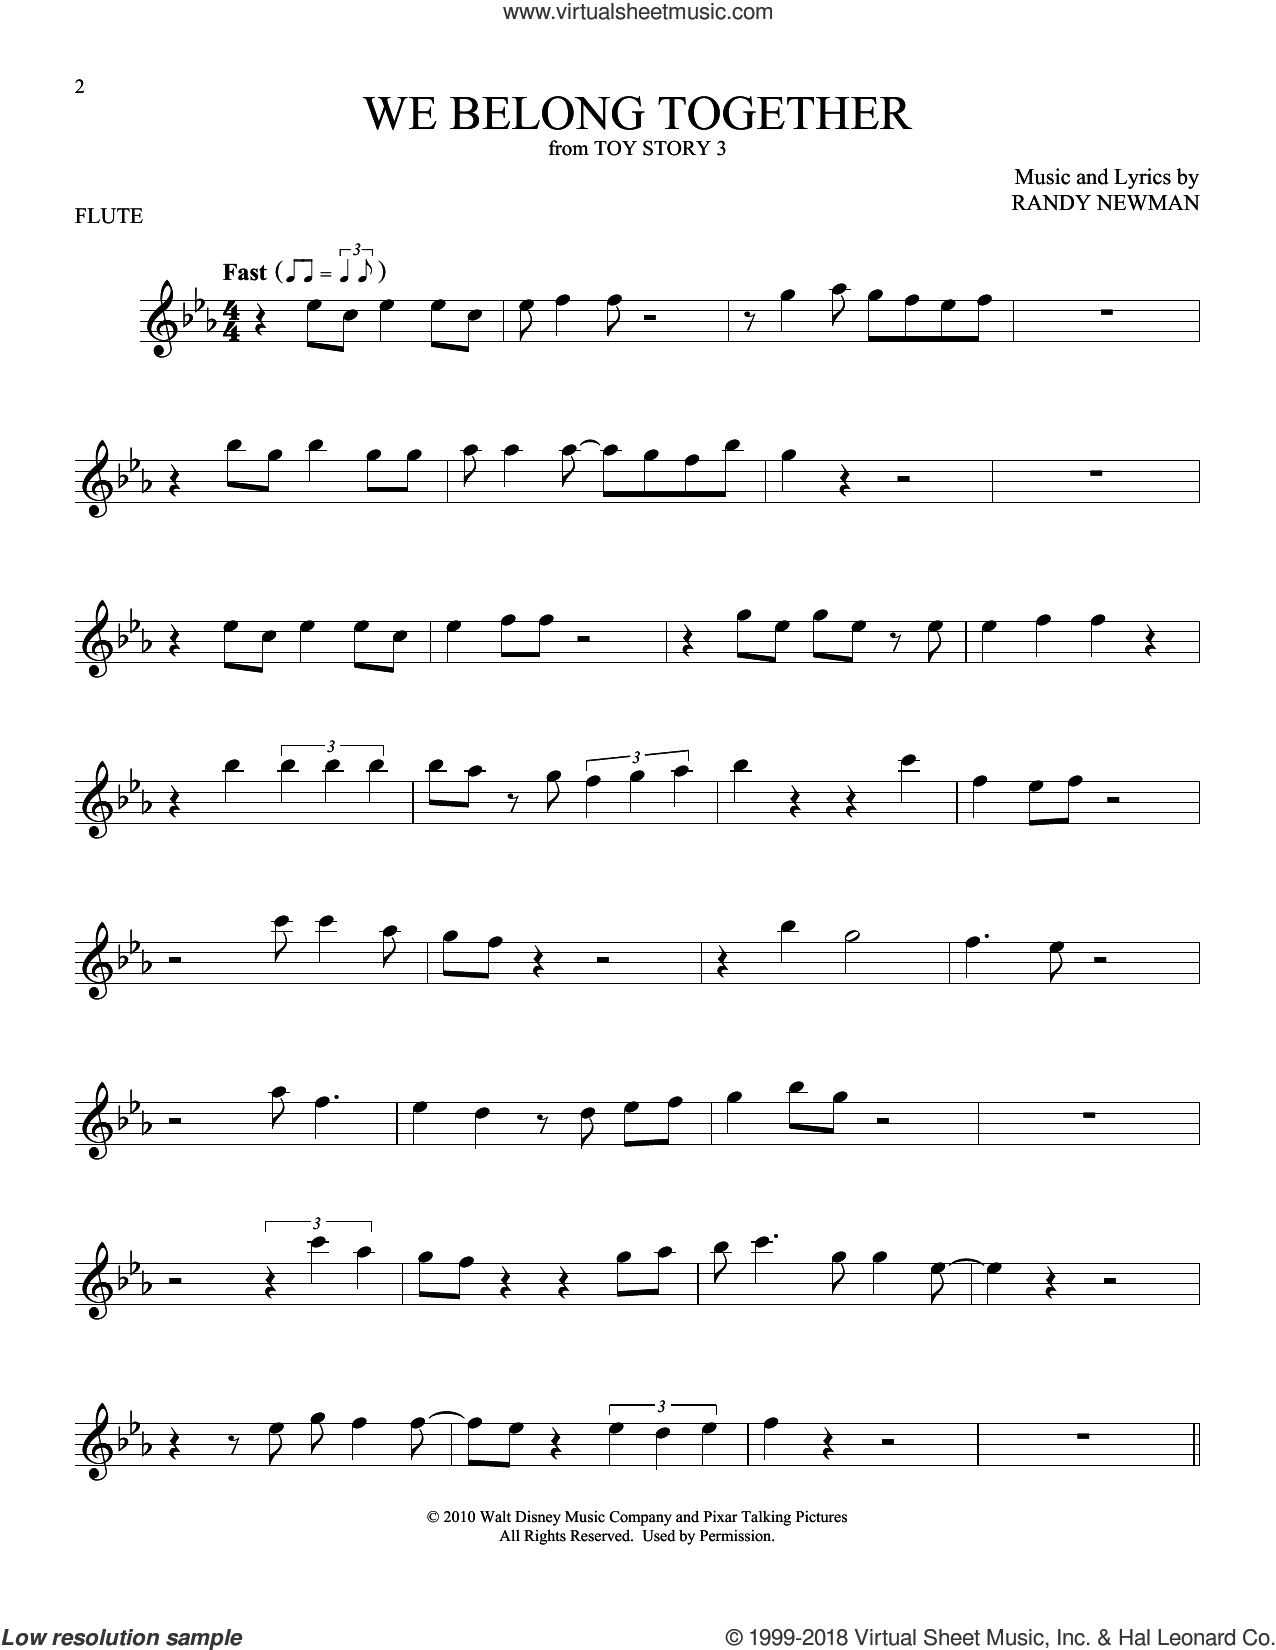 We Belong Together (from Toy Story 3) sheet music for flute solo by Randy Newman, intermediate skill level